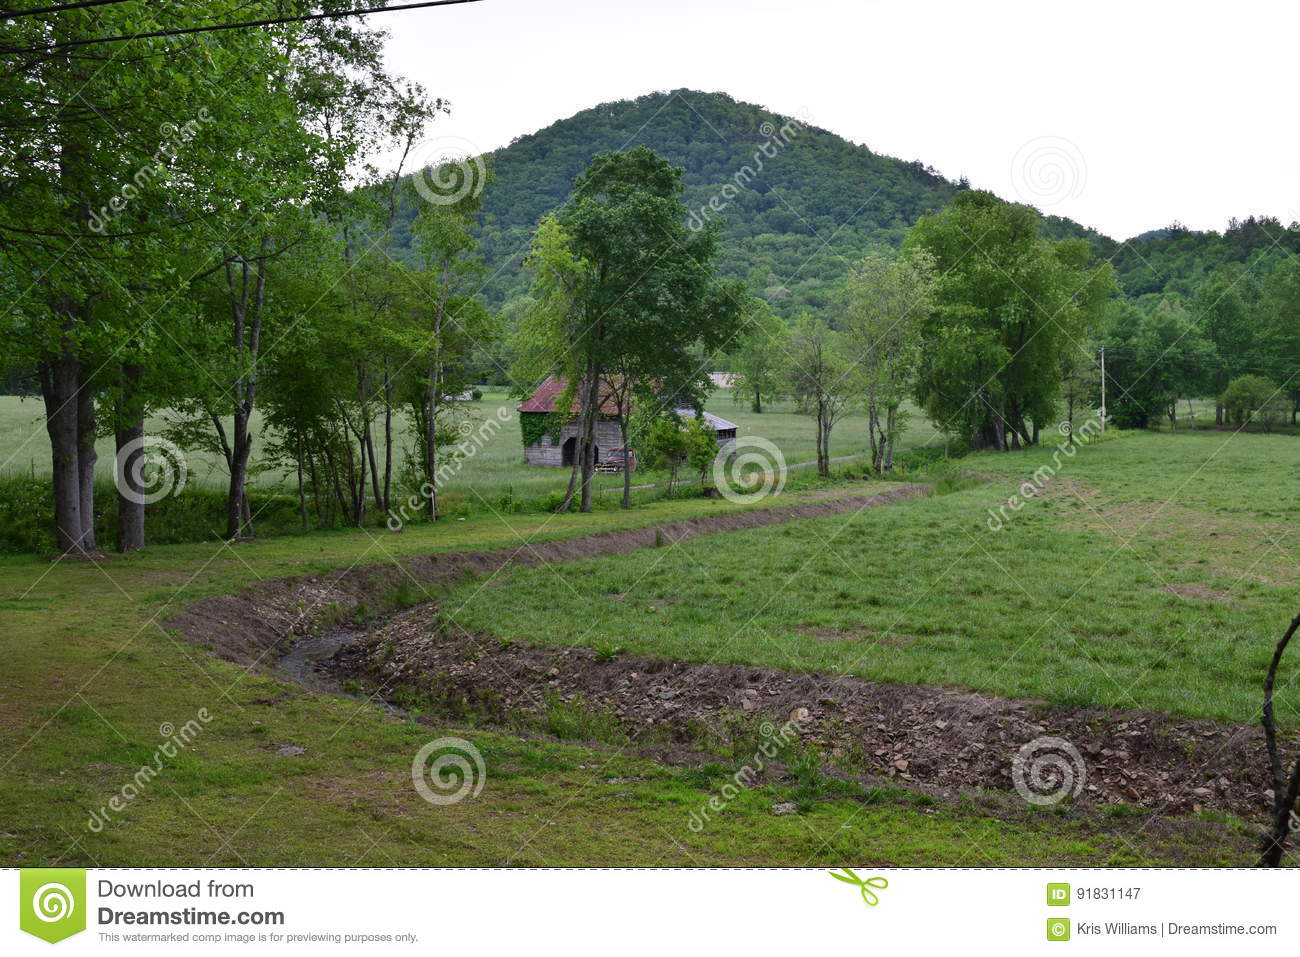 Pasture view with barn and mountain